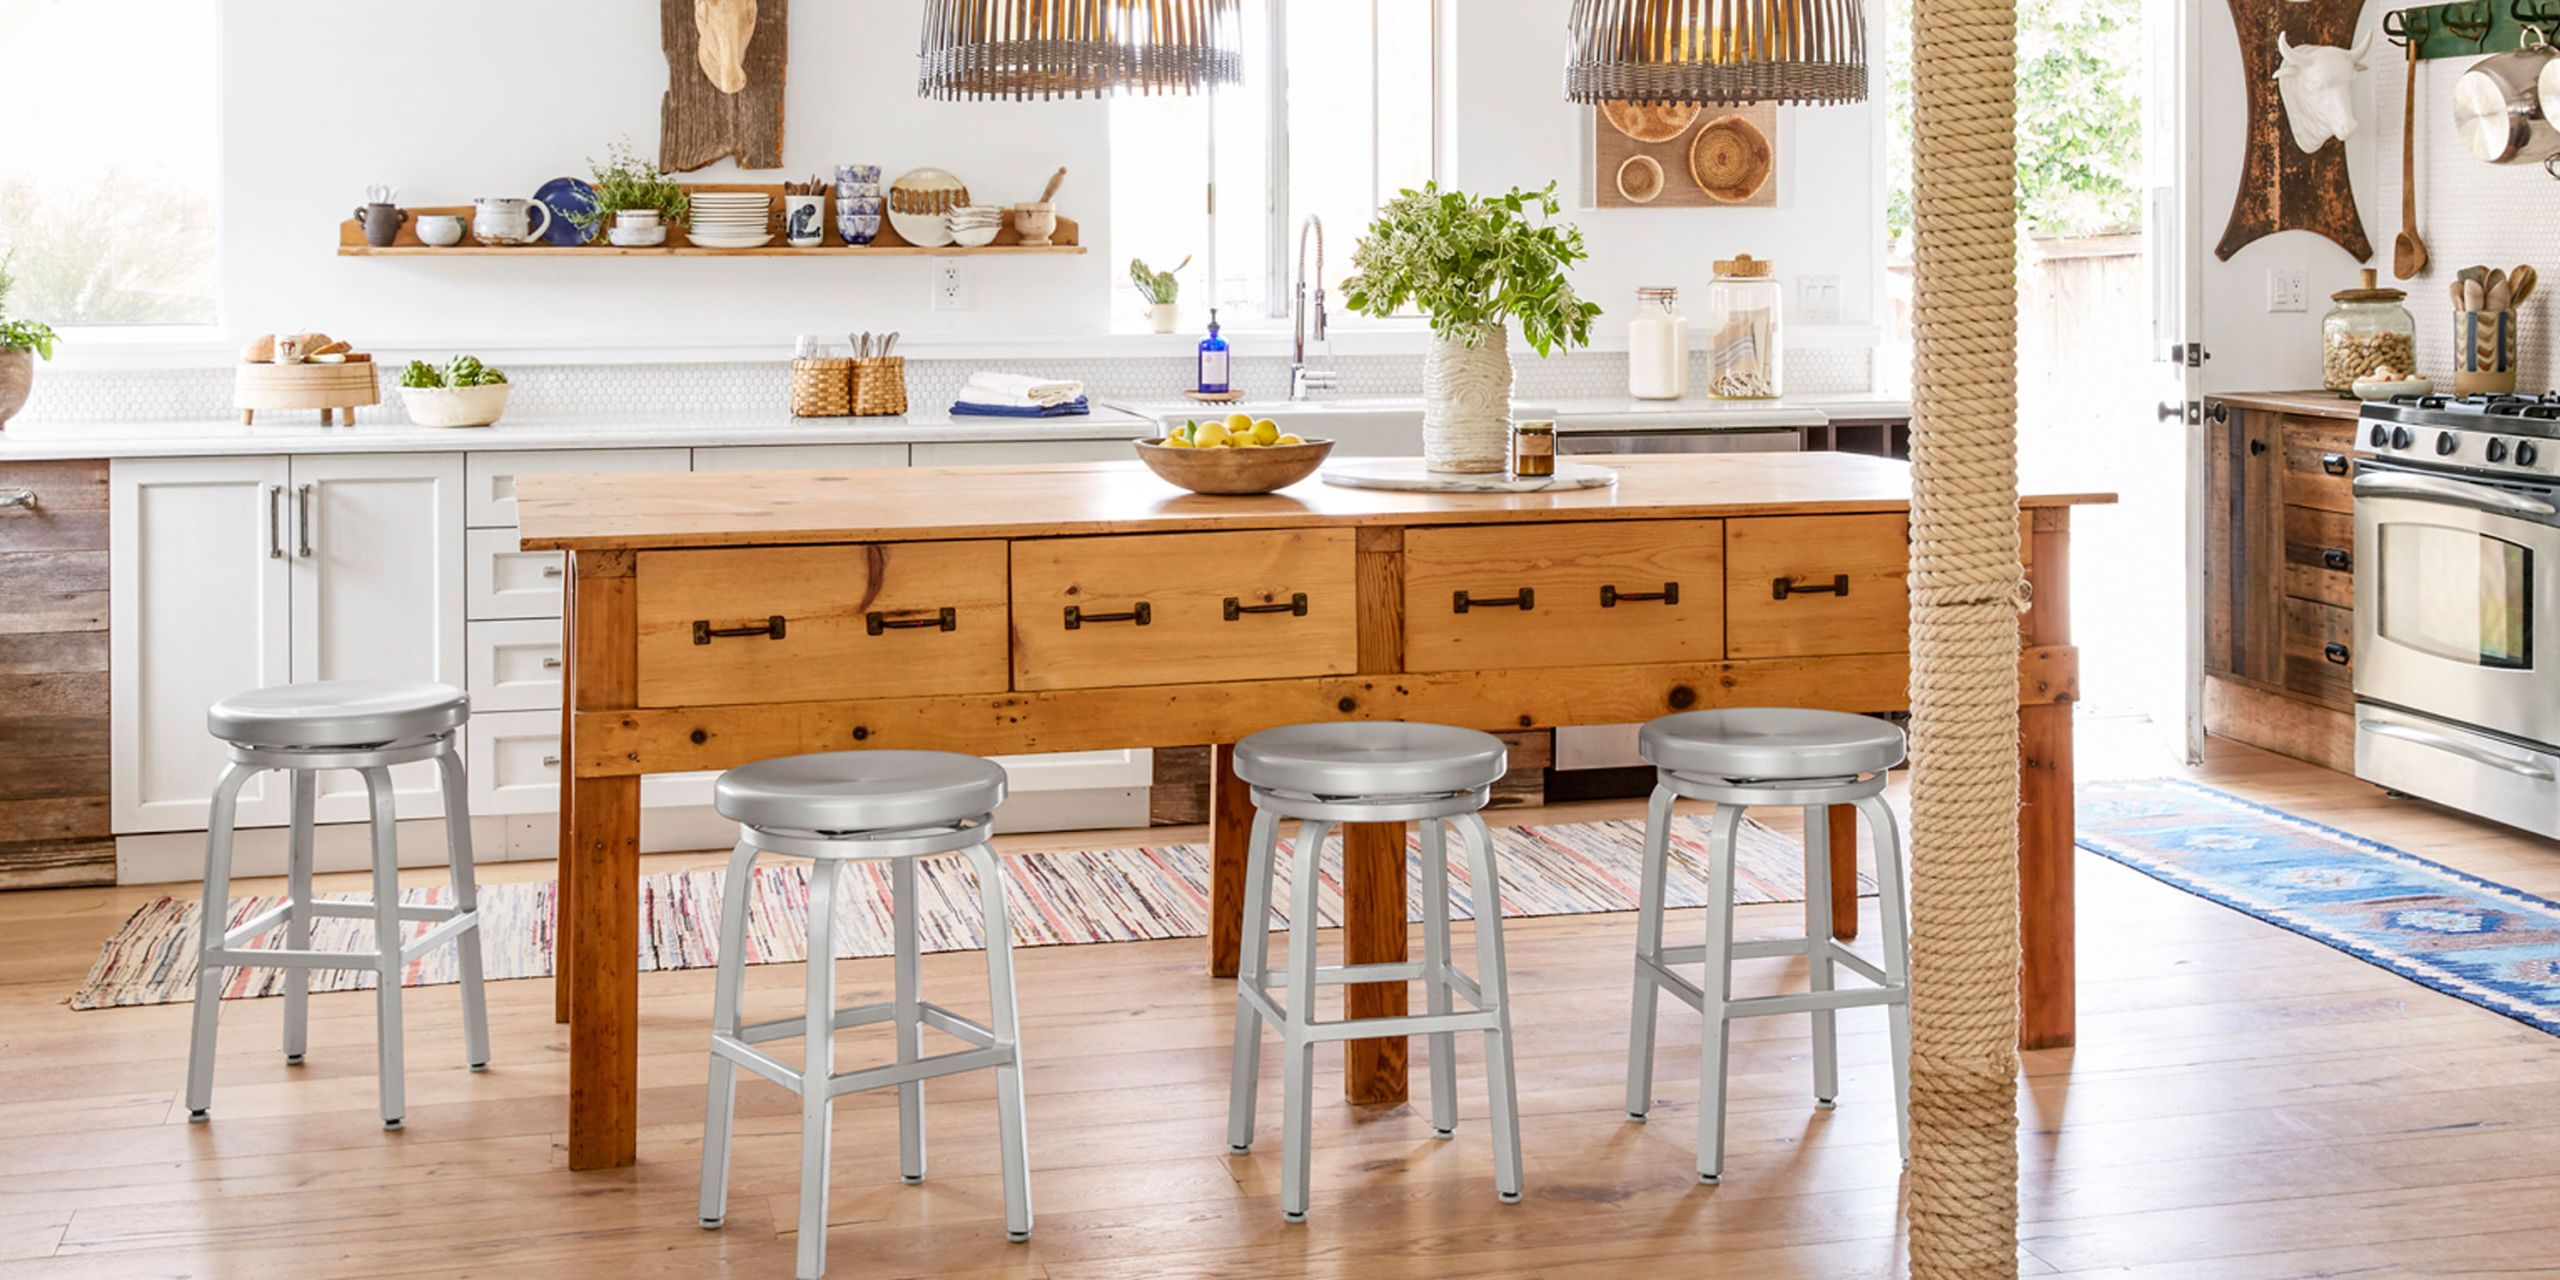 add storage style and extra seating with a standalone kitchen island  50  best kitchen island ideas   stylish designs for kitchen islands  rh   countryliving com